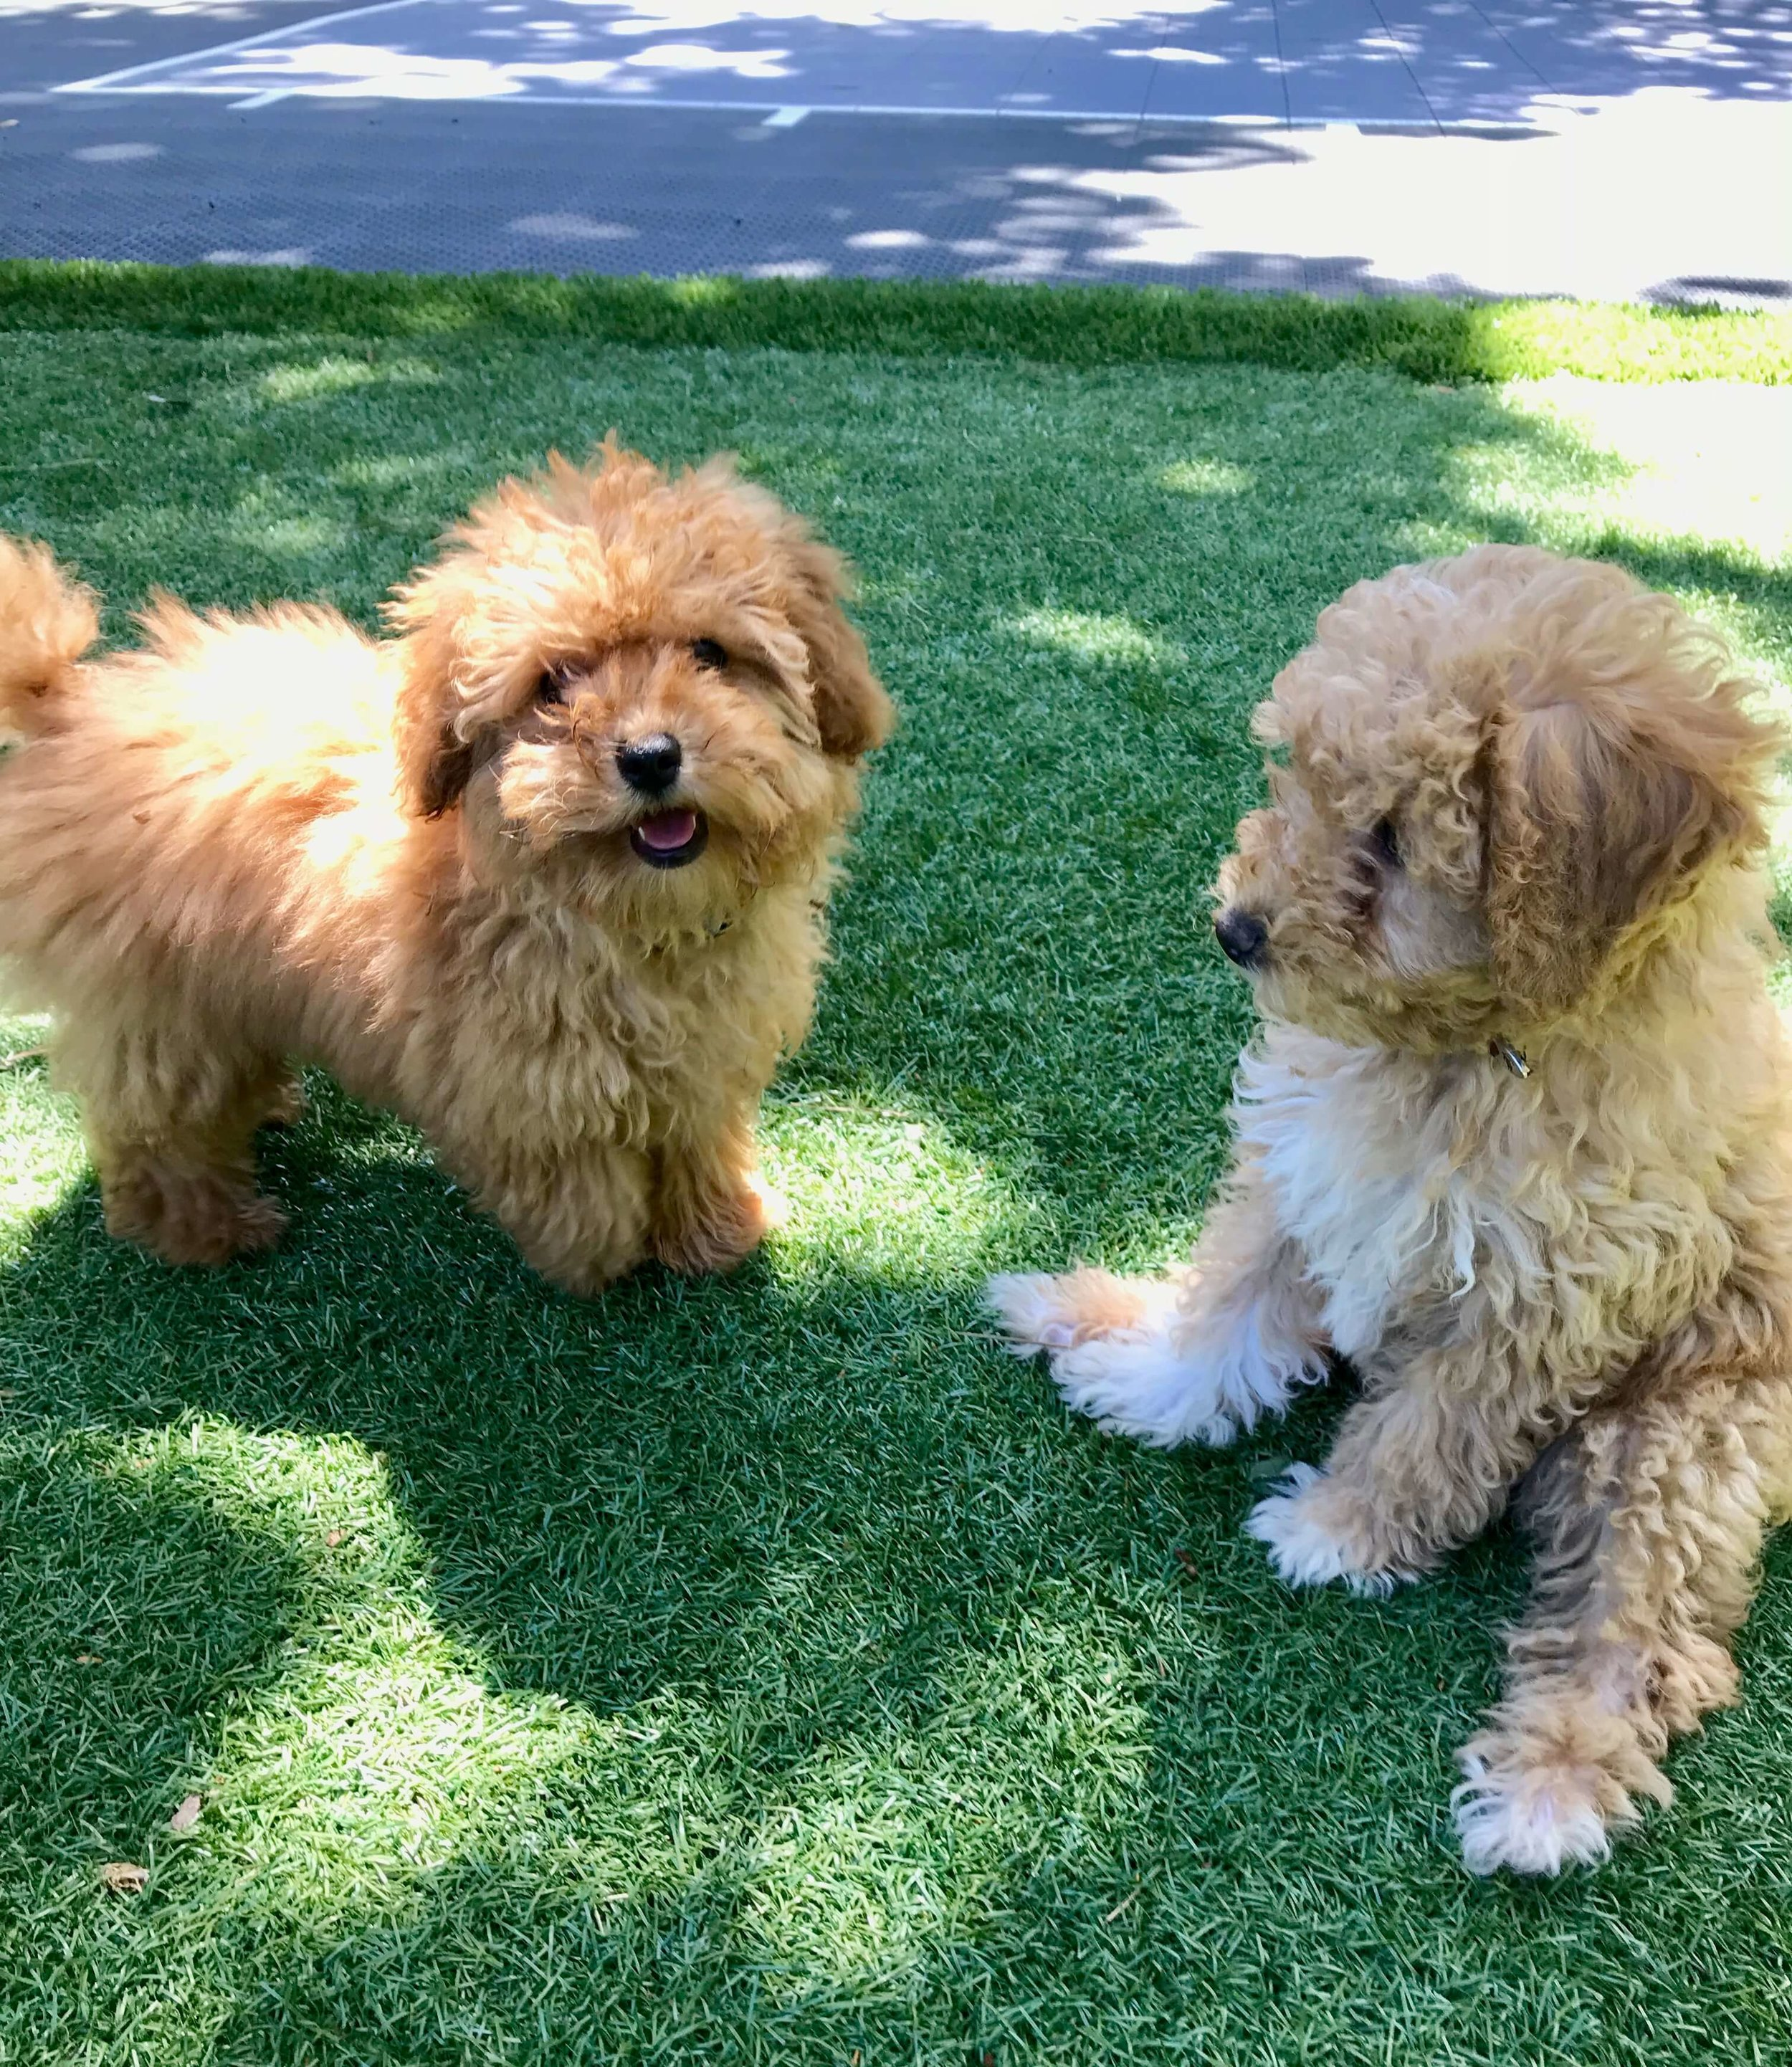 Goldendoodle puppy socialization with Dog Savvy Los Angeles, a puppy training company in Los Angeles.